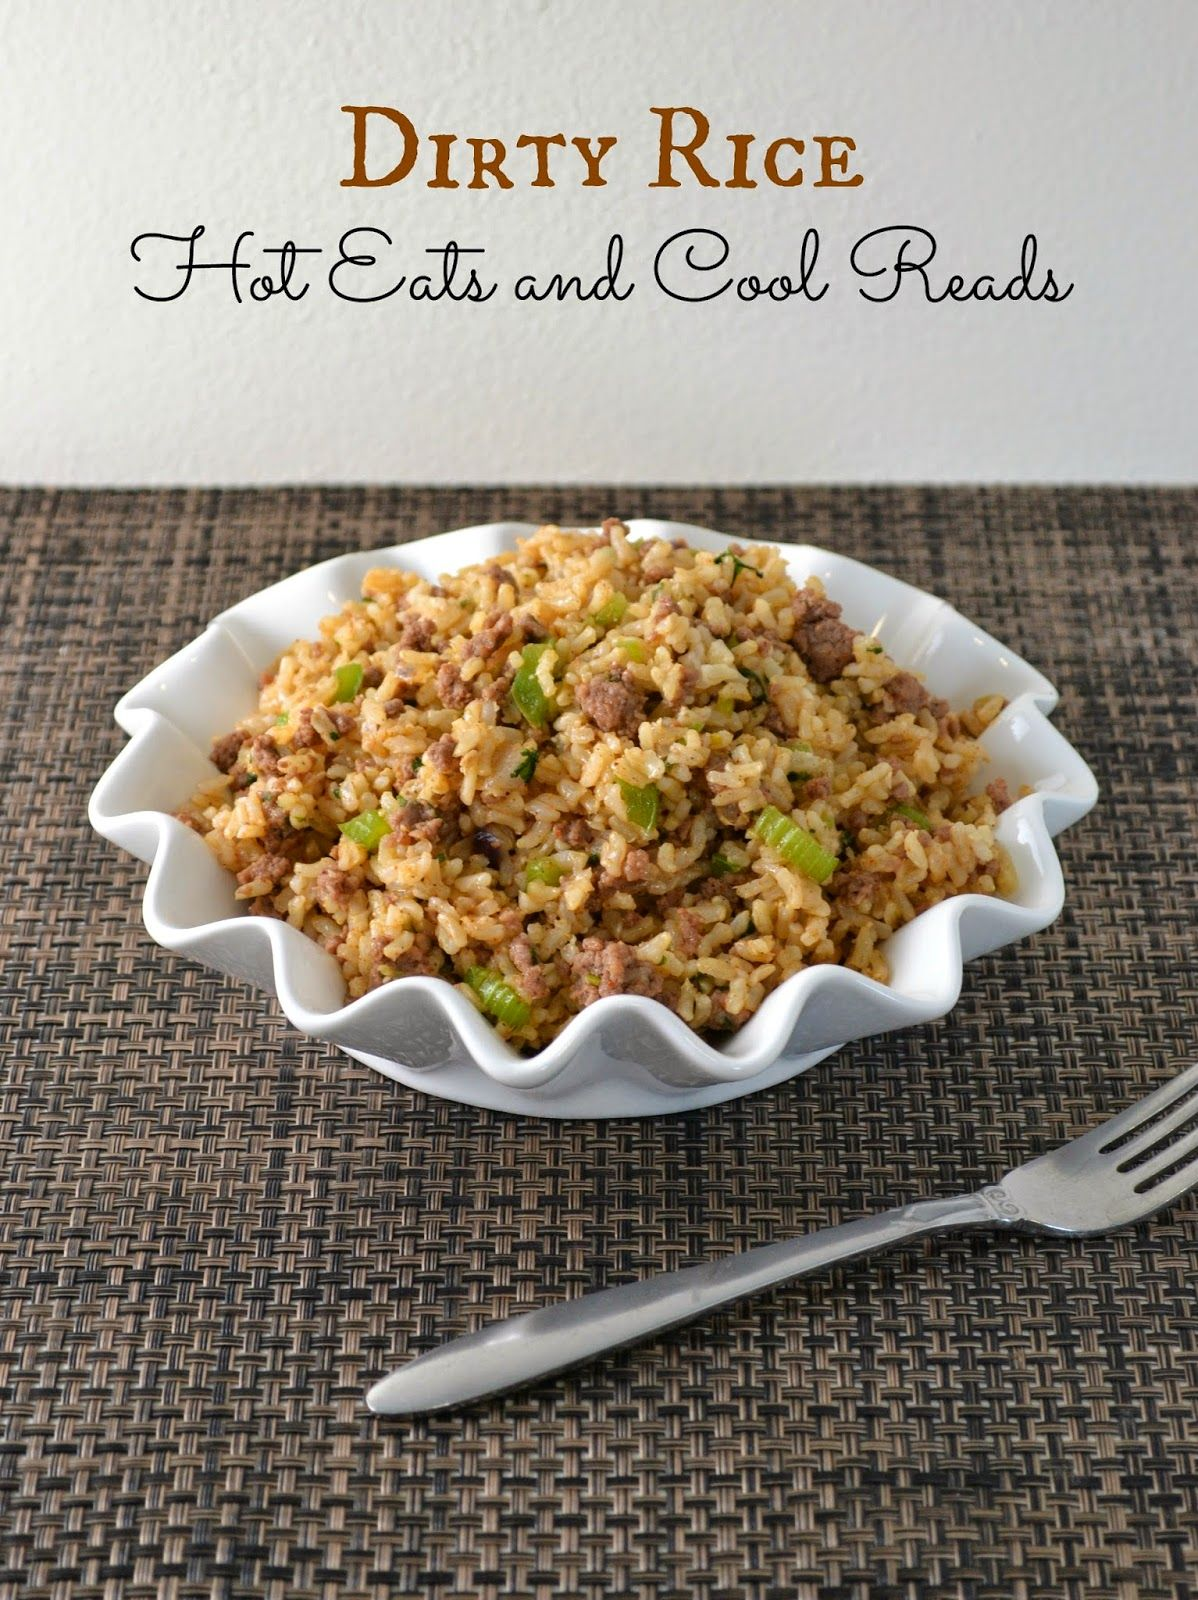 Ground beef dirty rice recipe dirty rice rice and dinners ground beef dirty rice recipe forumfinder Image collections